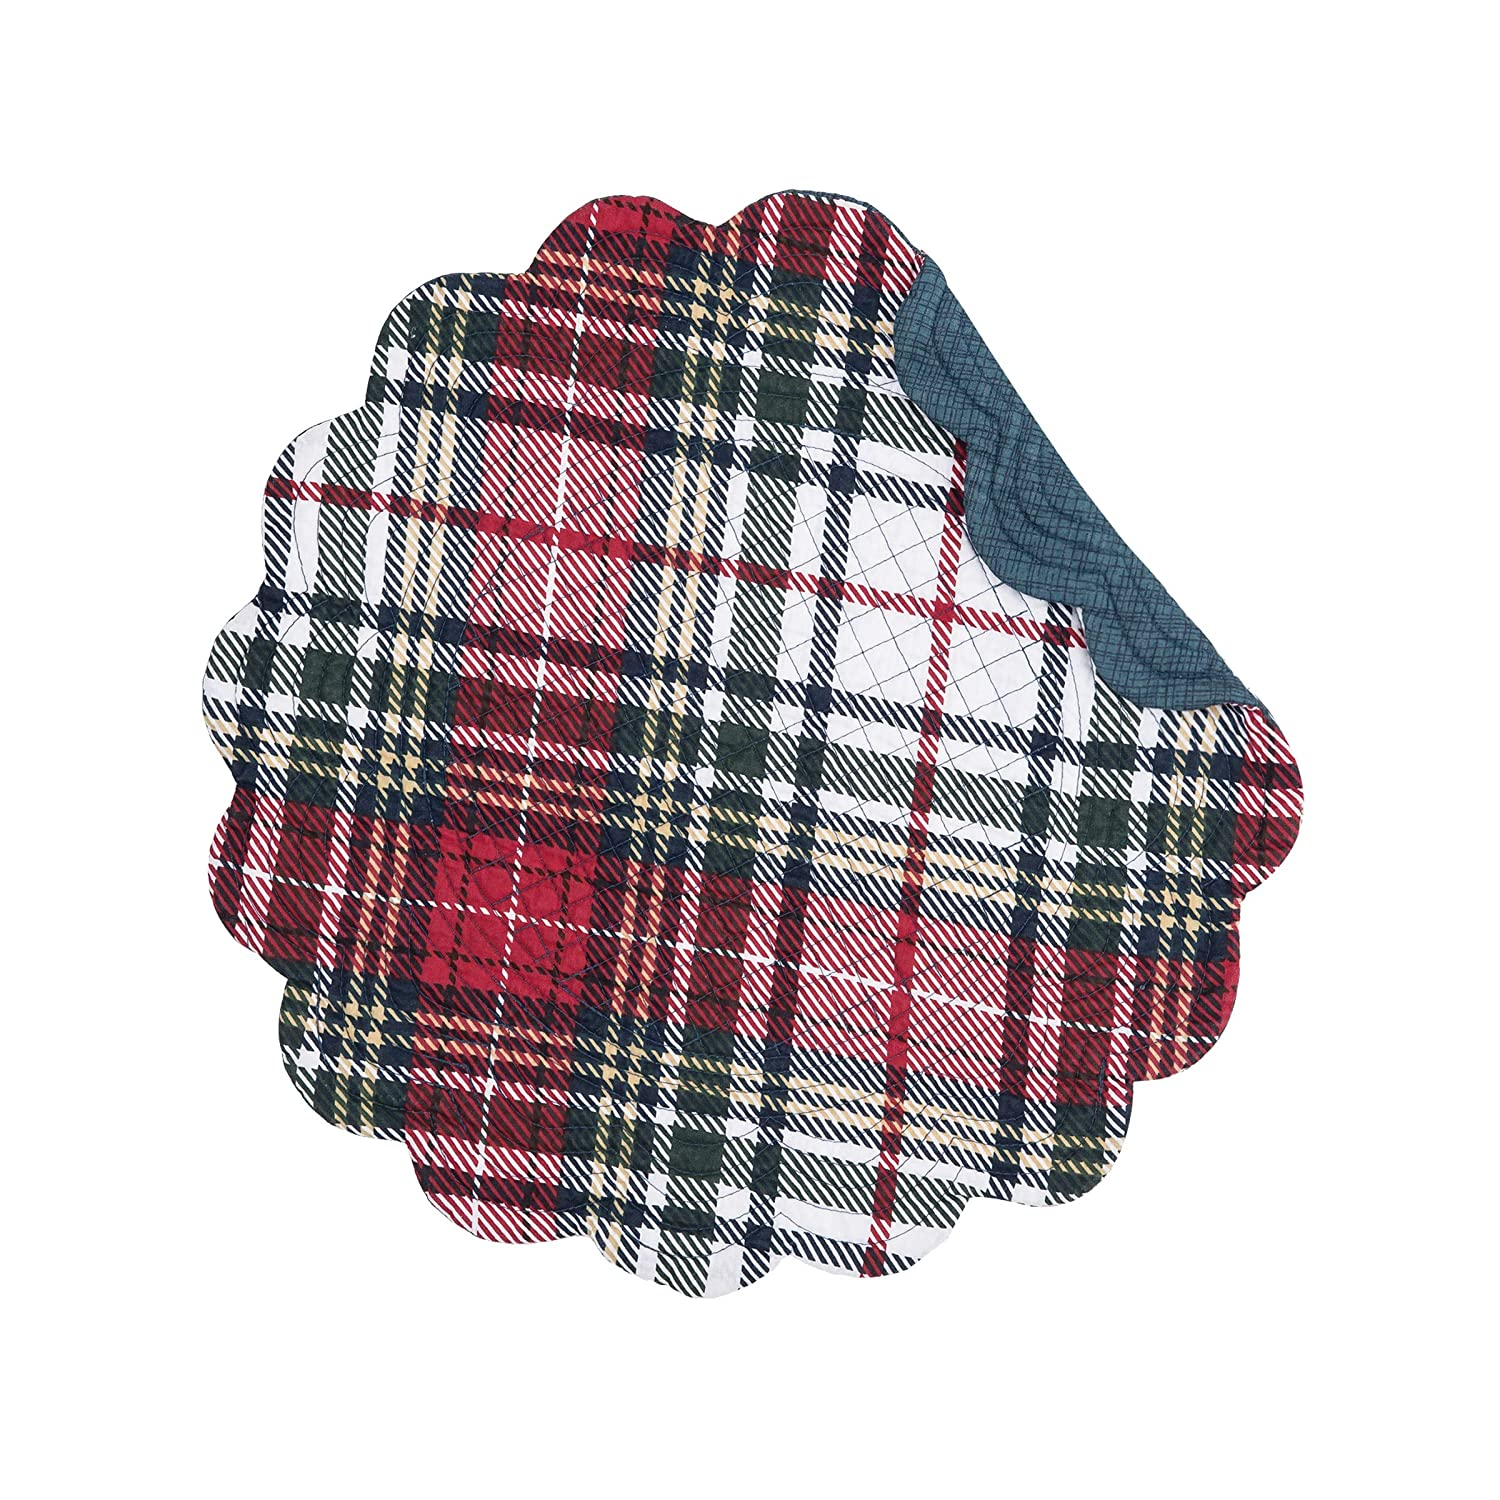 C&F Home Lennox Plaid Round Placemat Set of 6 Checkered Reversible Cotton Lodge Rustic Table Mat for Kitchen Dining Table Round Placemat Set of 6 Red